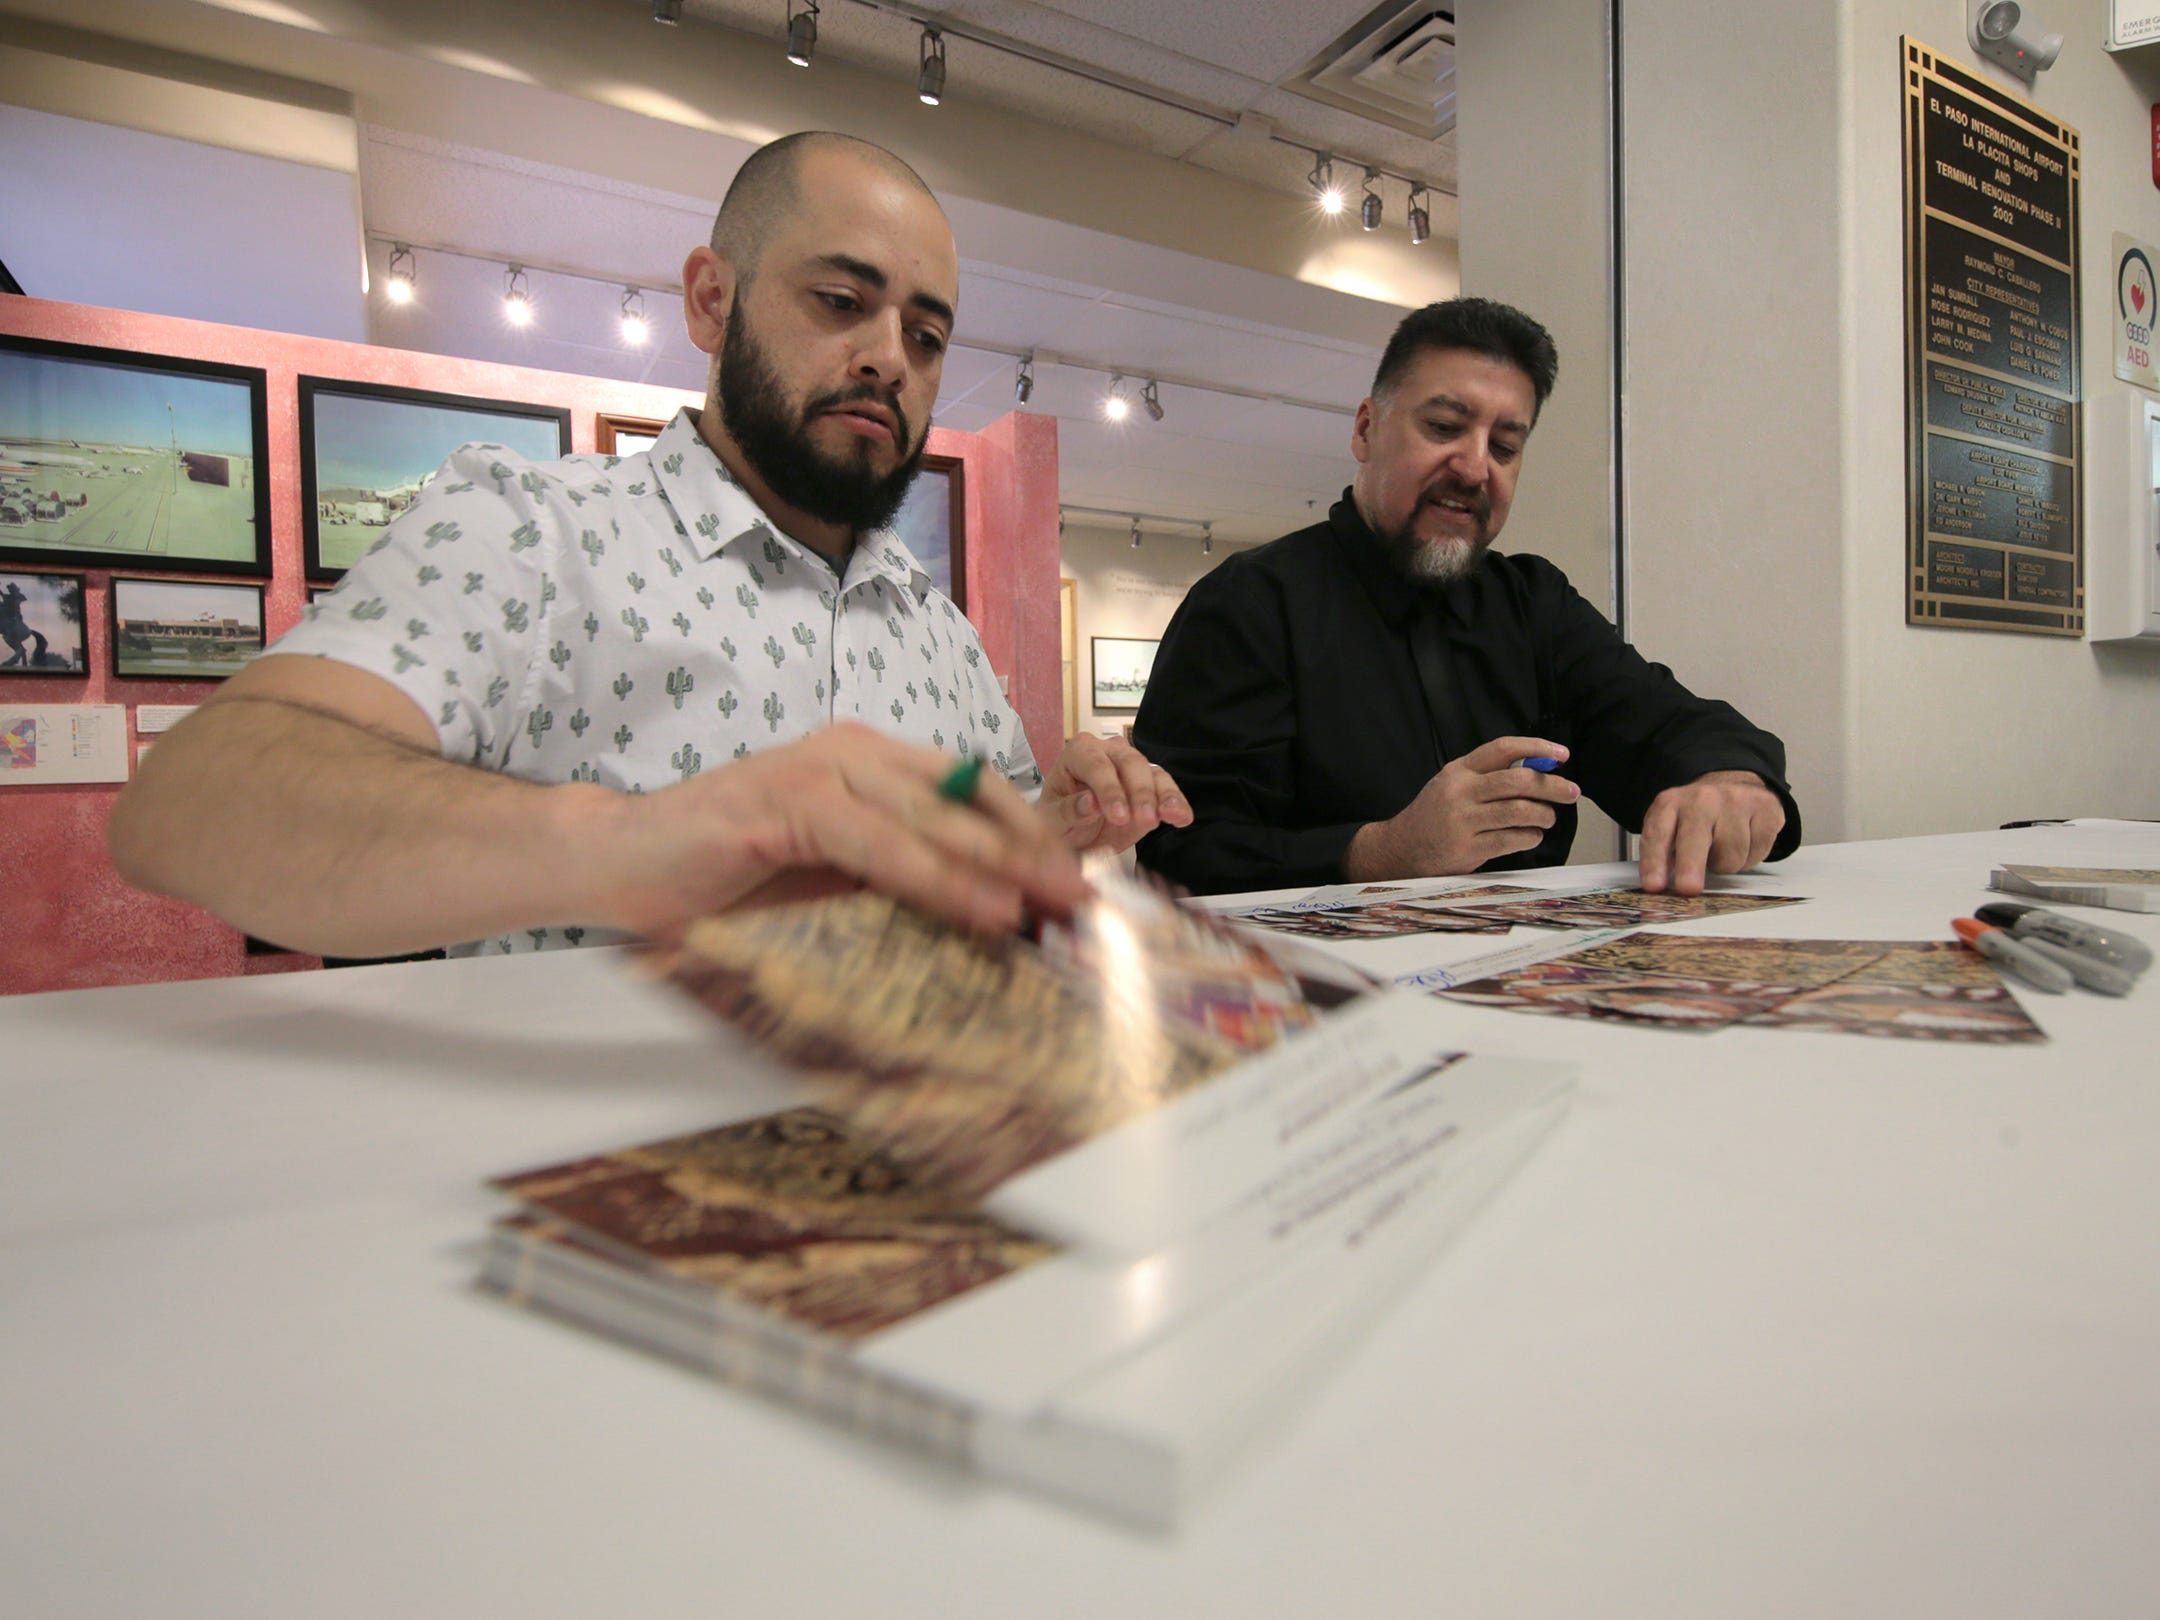 Adrian Lopez, left, and Ramiro Ordonez sign cards after cutting the ribbon on their exhibit at the Art Windows of El Paso Friday.